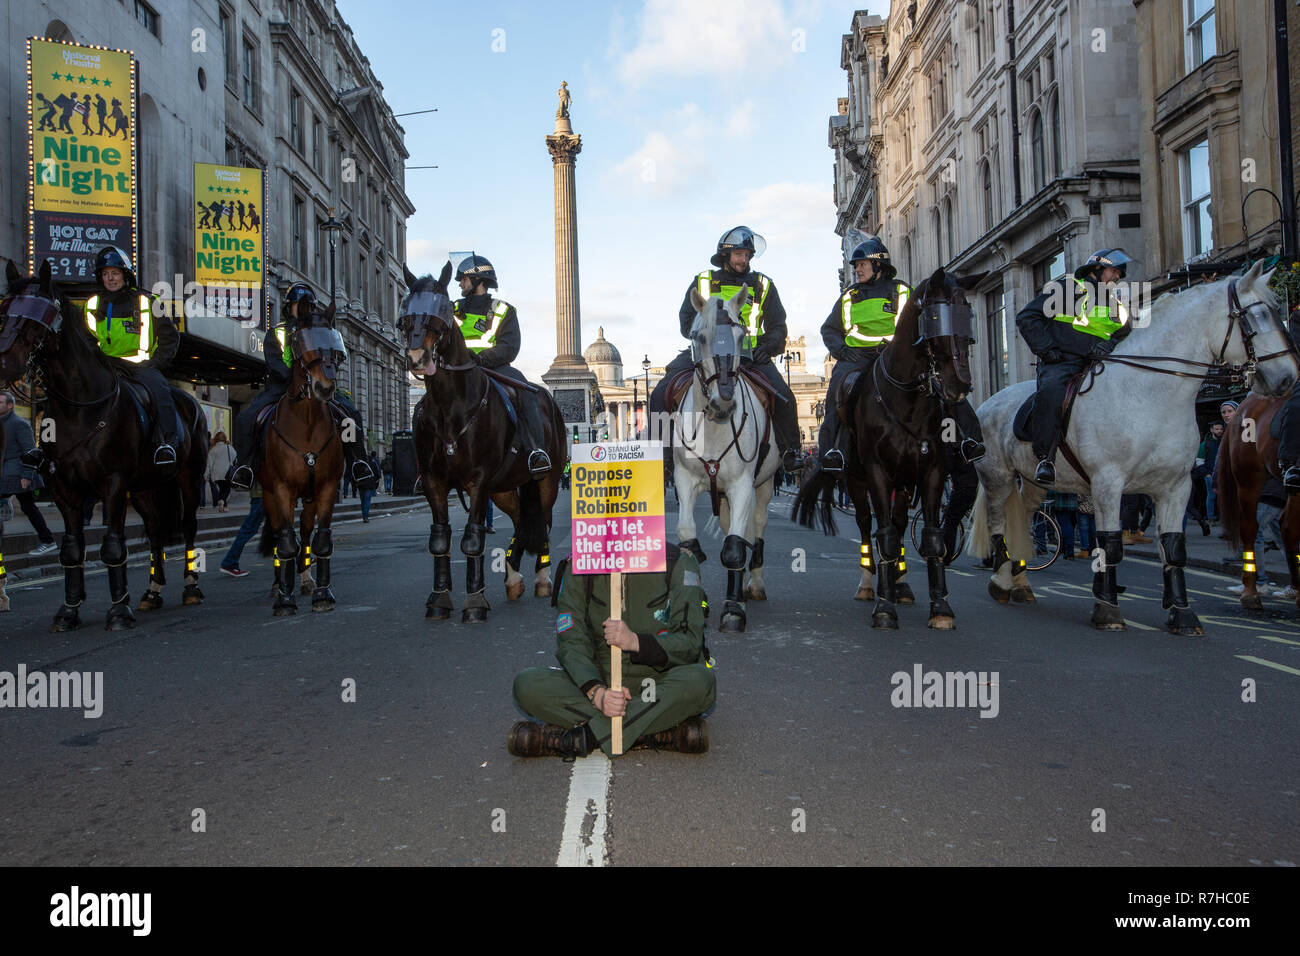 London, UK. 9th Dec, 2018. An anti-fascist demonstrator sits in front of mounted police (Nelson's Column in the background), close to the 'Brexit Means Exit' / 'Brexit Betrayal March' rally. Credit: Graeme Weston/Alamy Live News - Stock Image